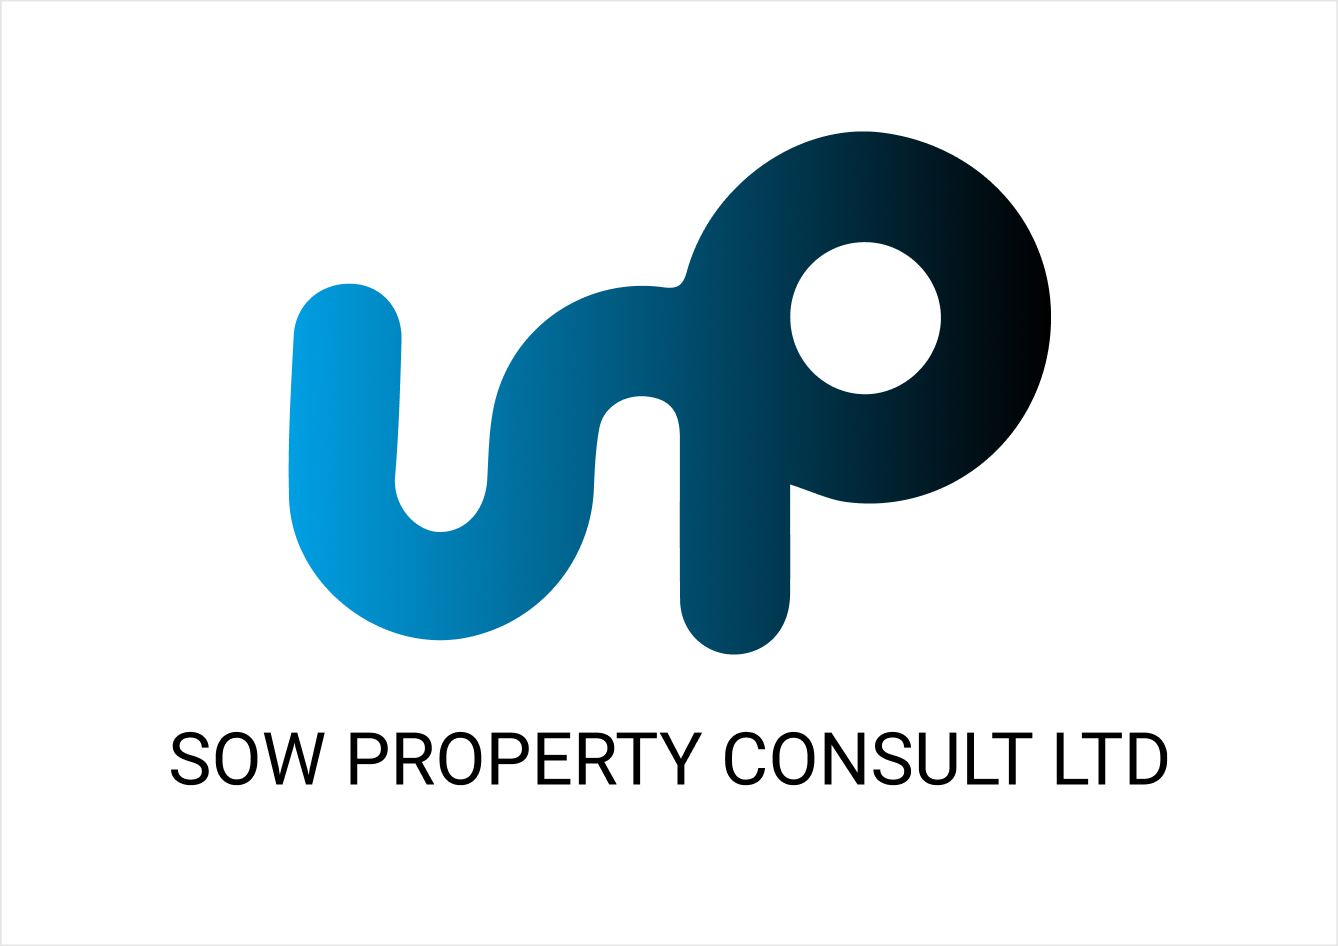 Sow Property Consult